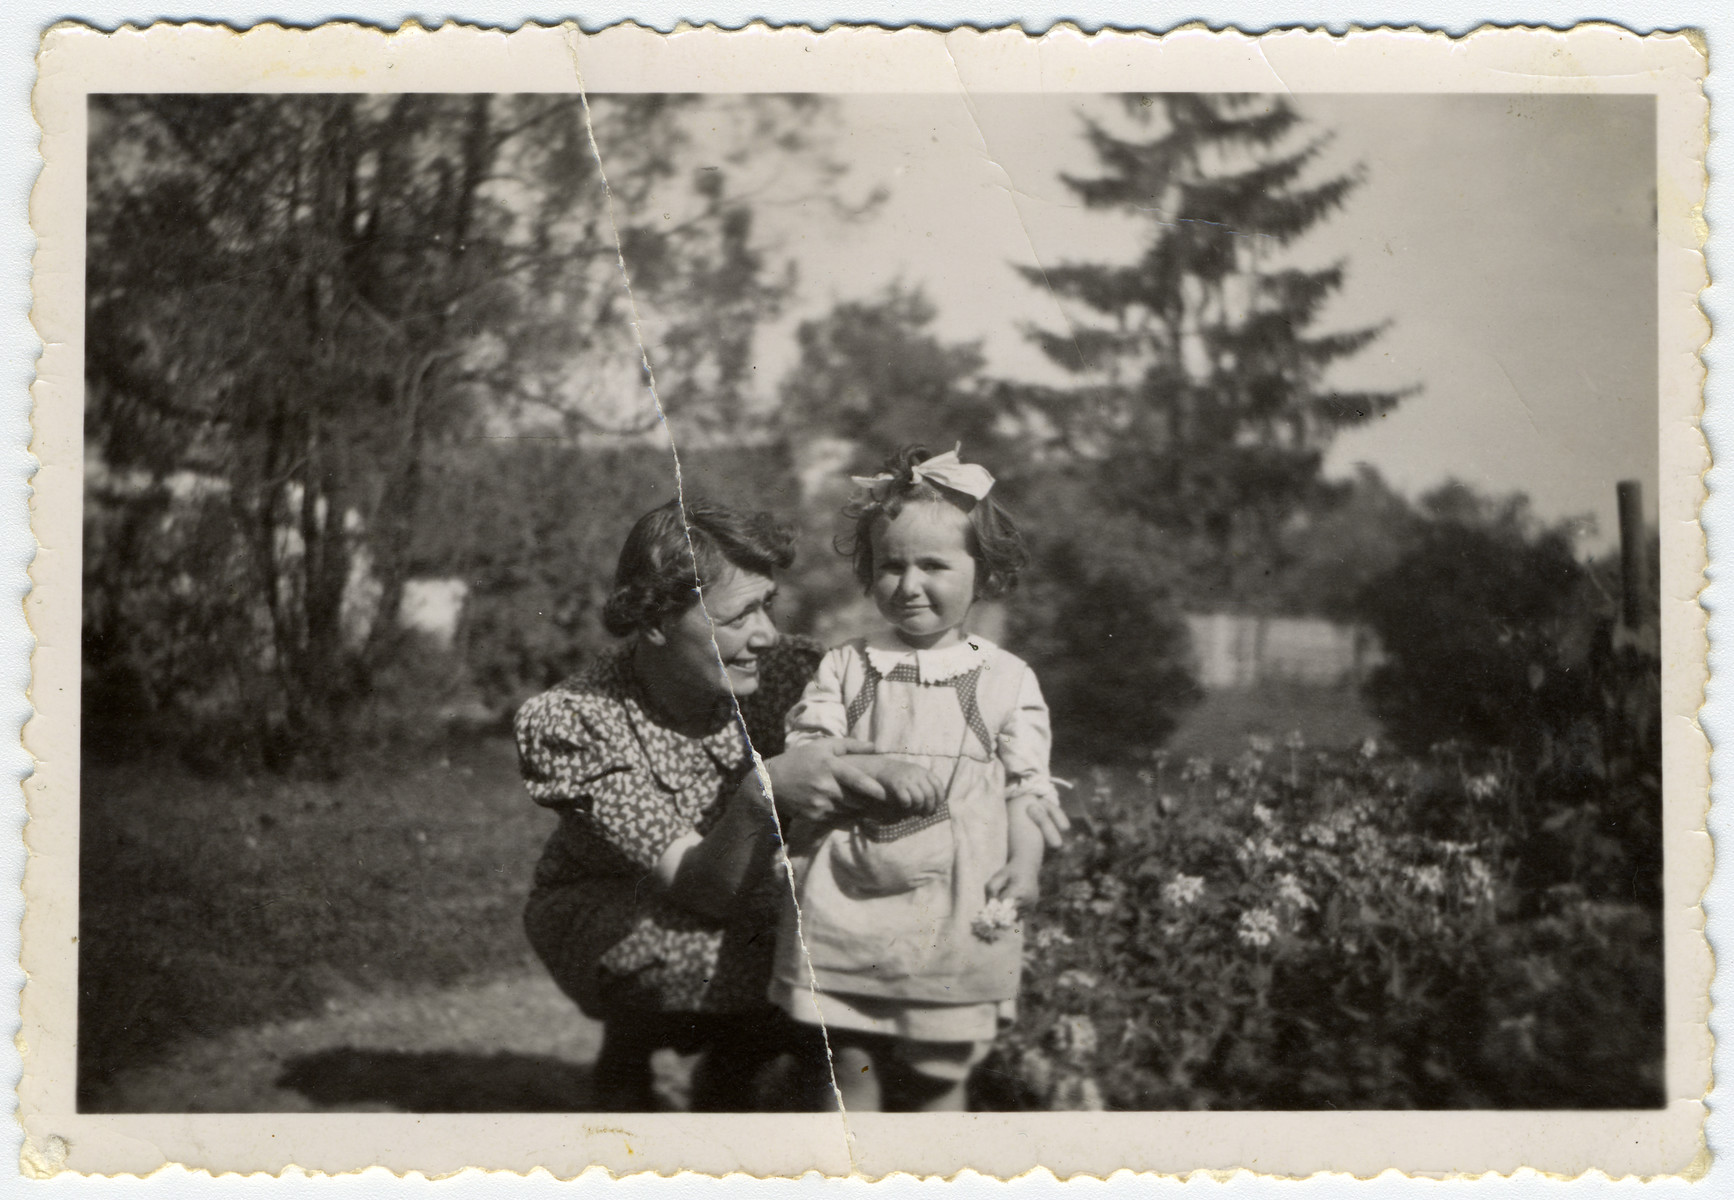 Katie Engel stands with her mother on her uncle's farm in Czechoslovakia.